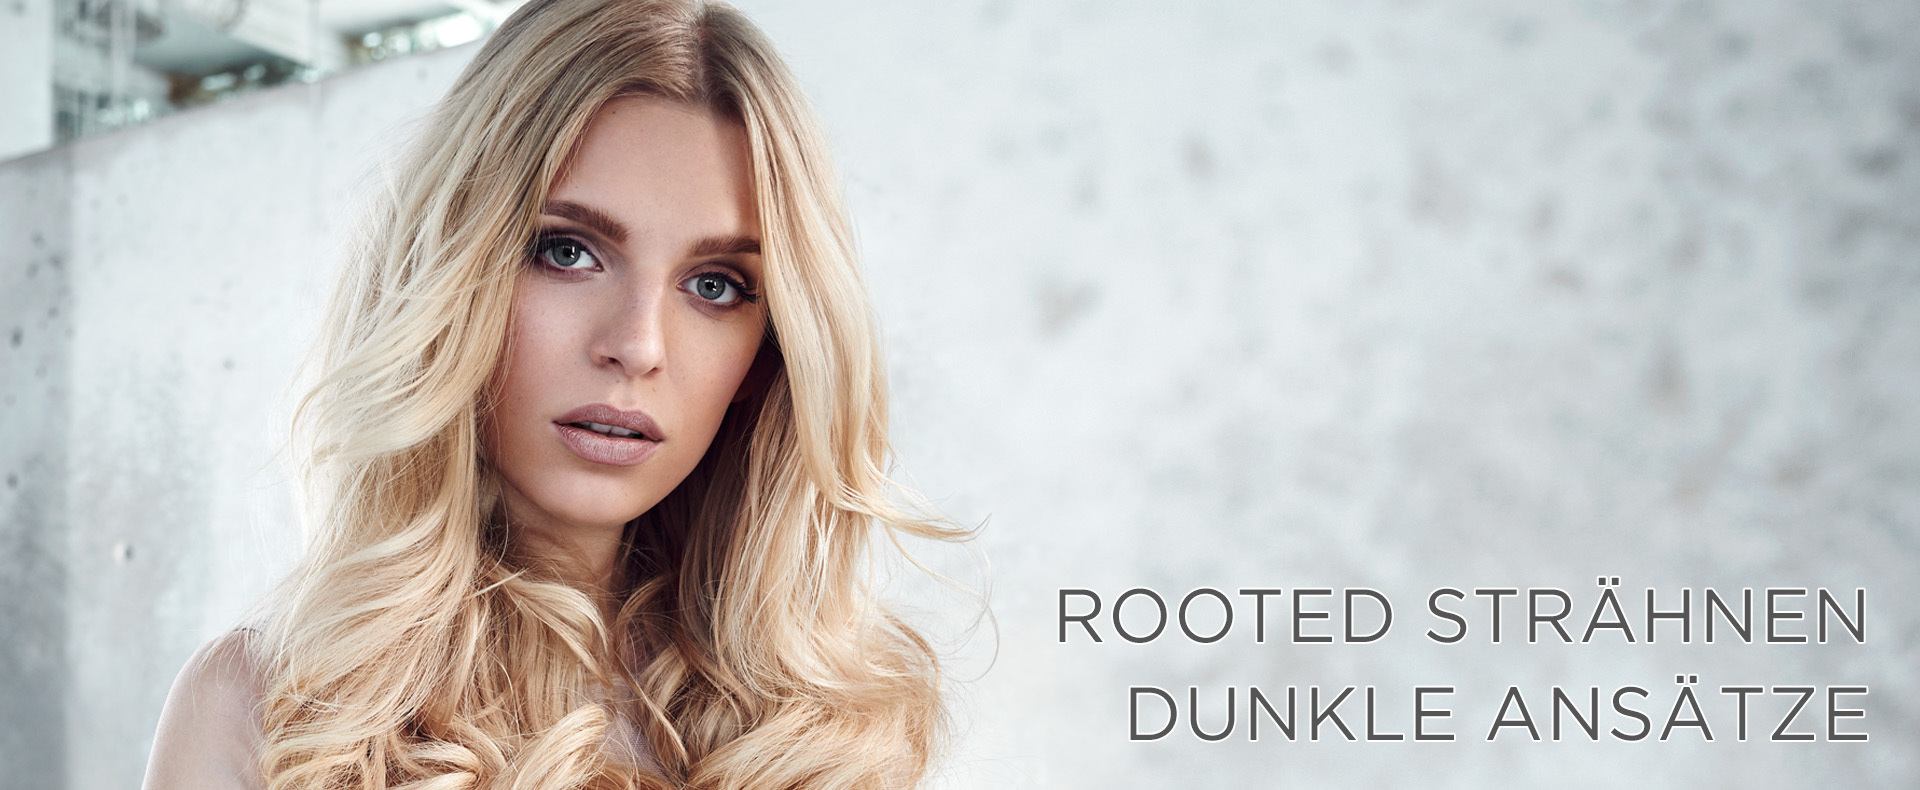 ROOTED: Vom Tabu zum Trend! (© Great Lengths)